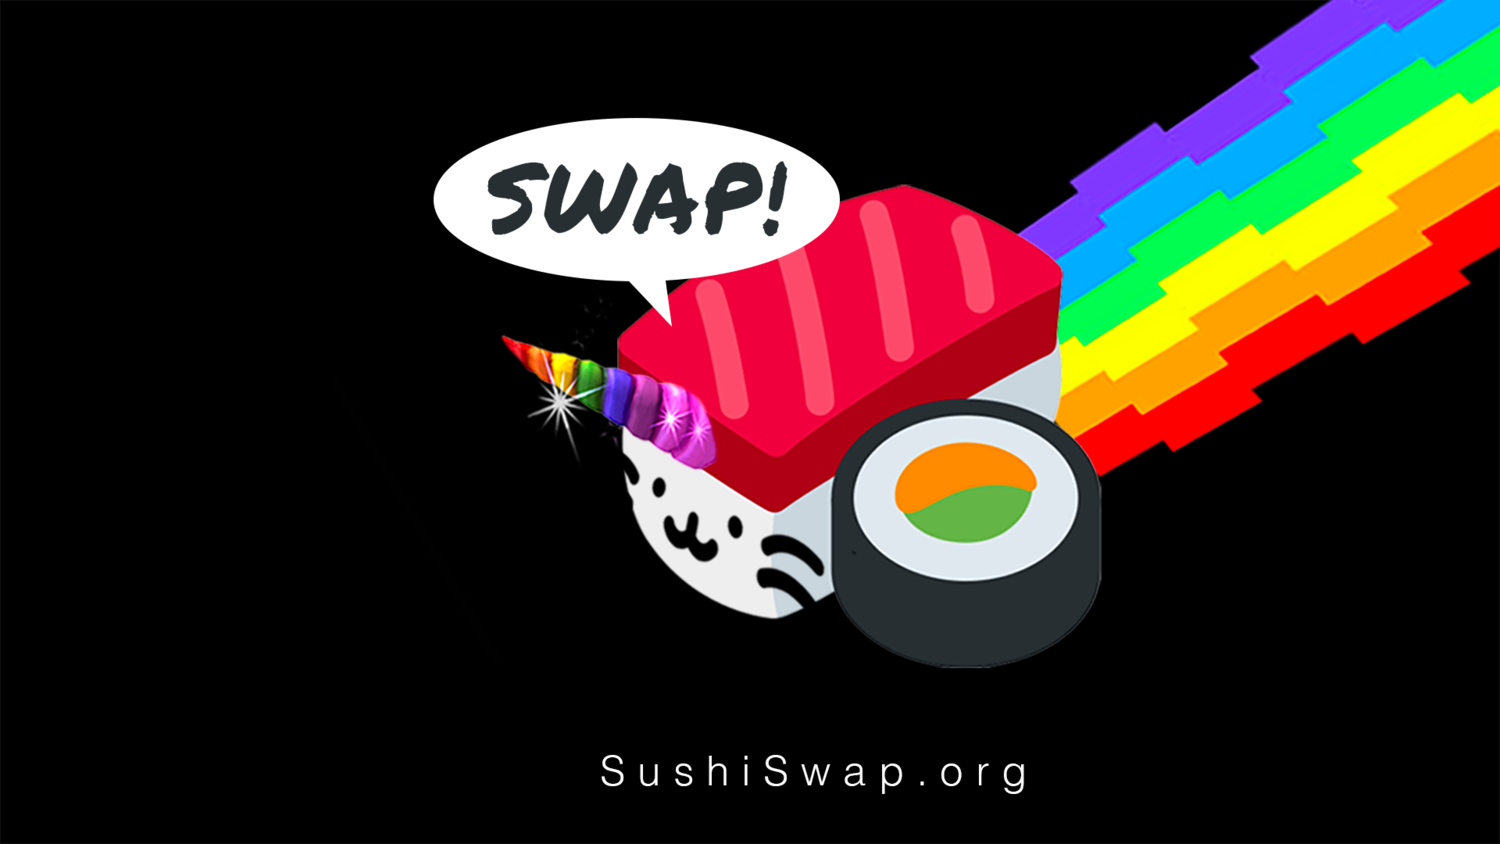 What is SushiSwap?